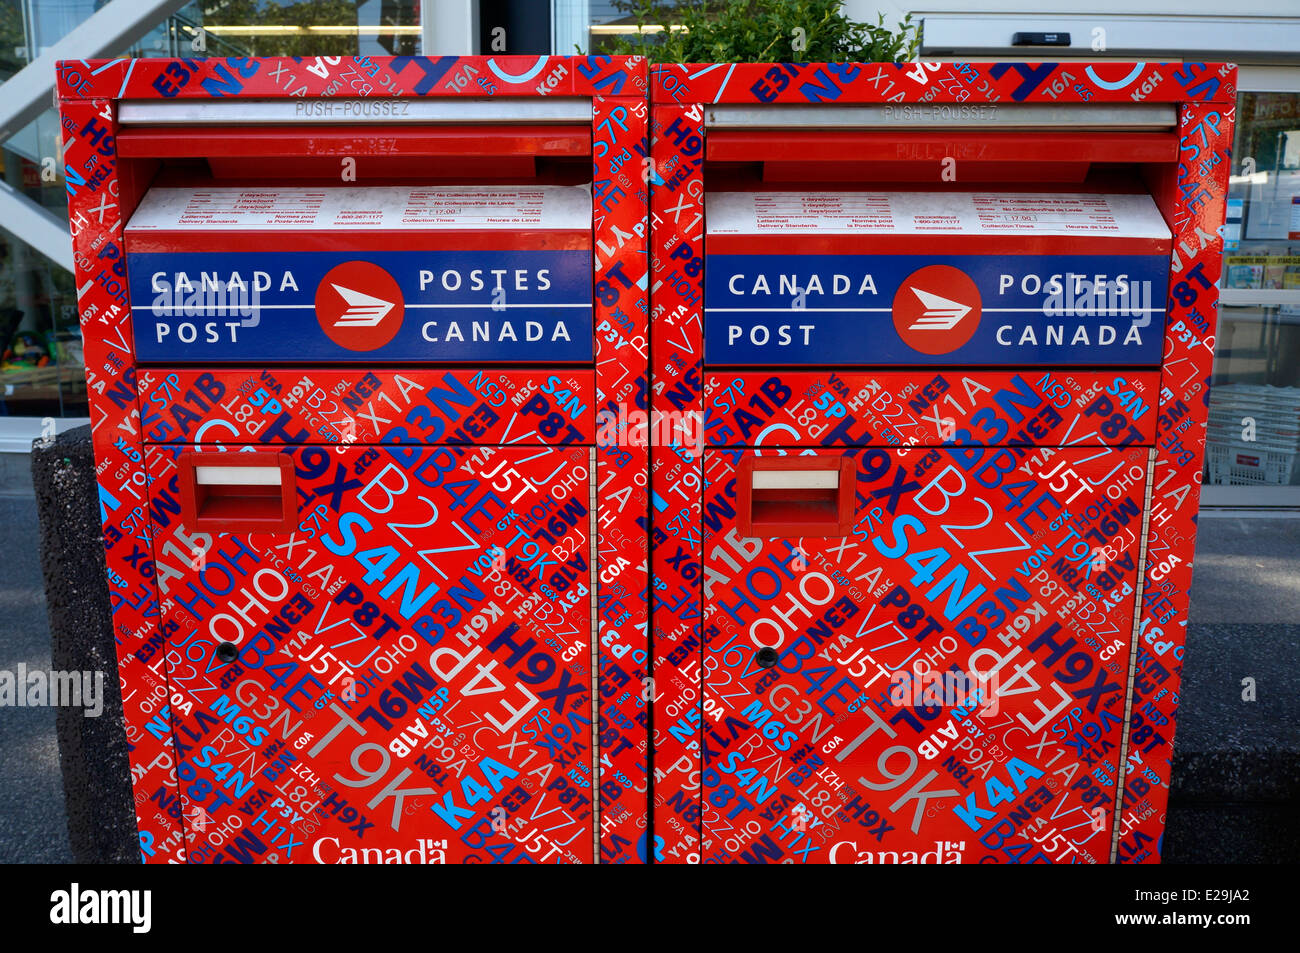 Canada Post mailboxes decorated with Canadian postal codes, Kerrisdale, Vancouver, BC, Canada - Stock Image